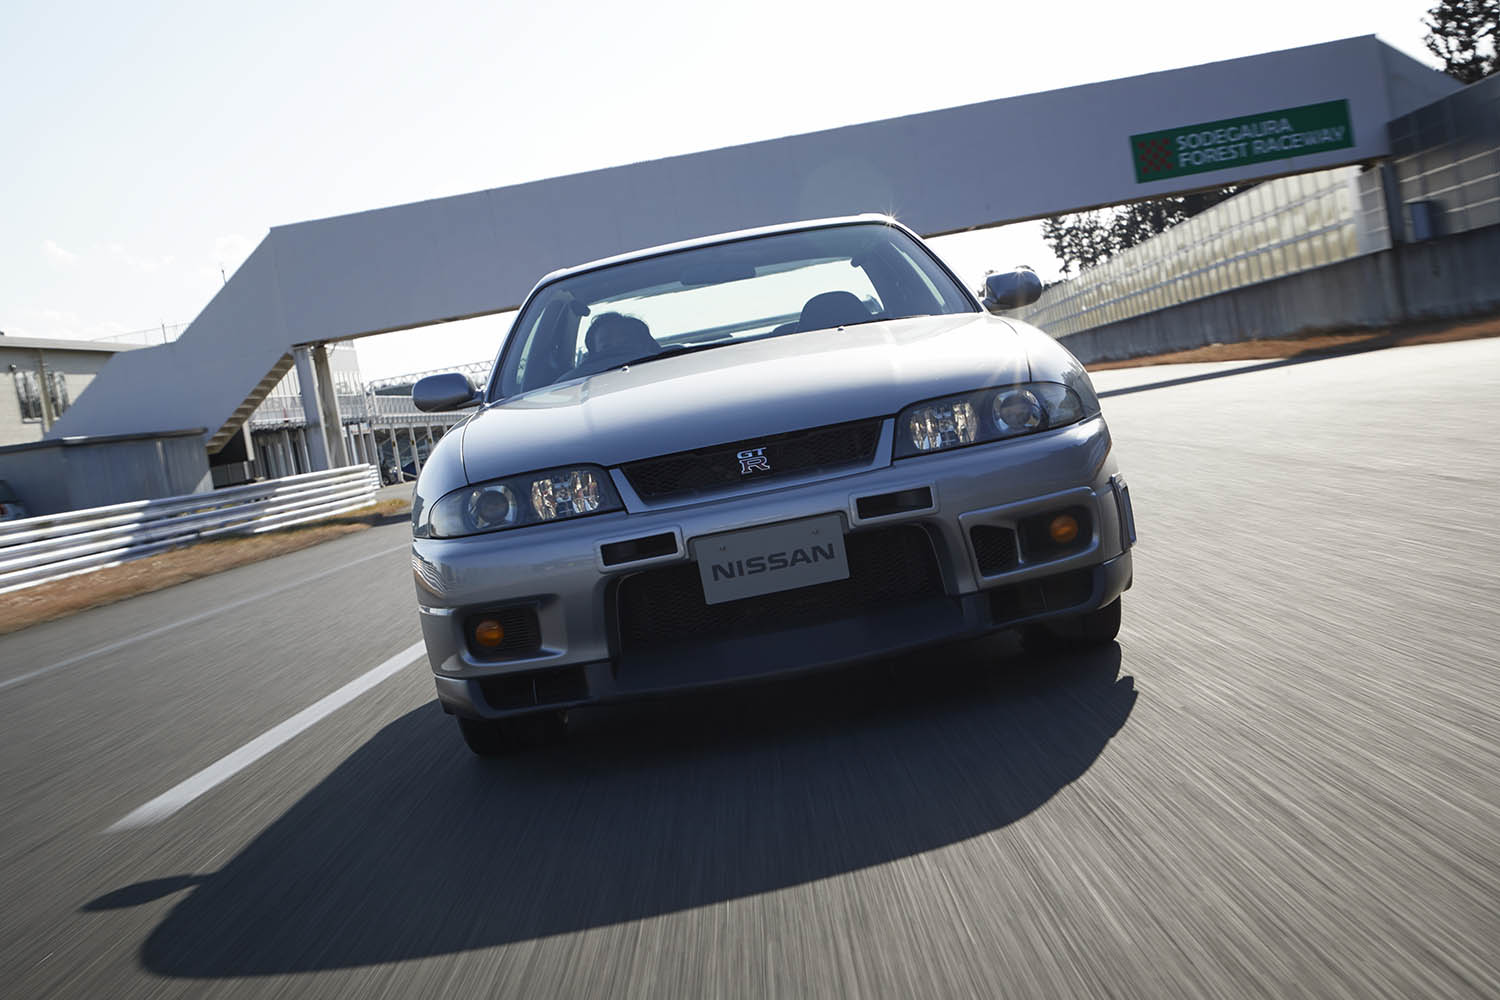 GT-R_BCNR33_1997_Driving_07-source.jpg